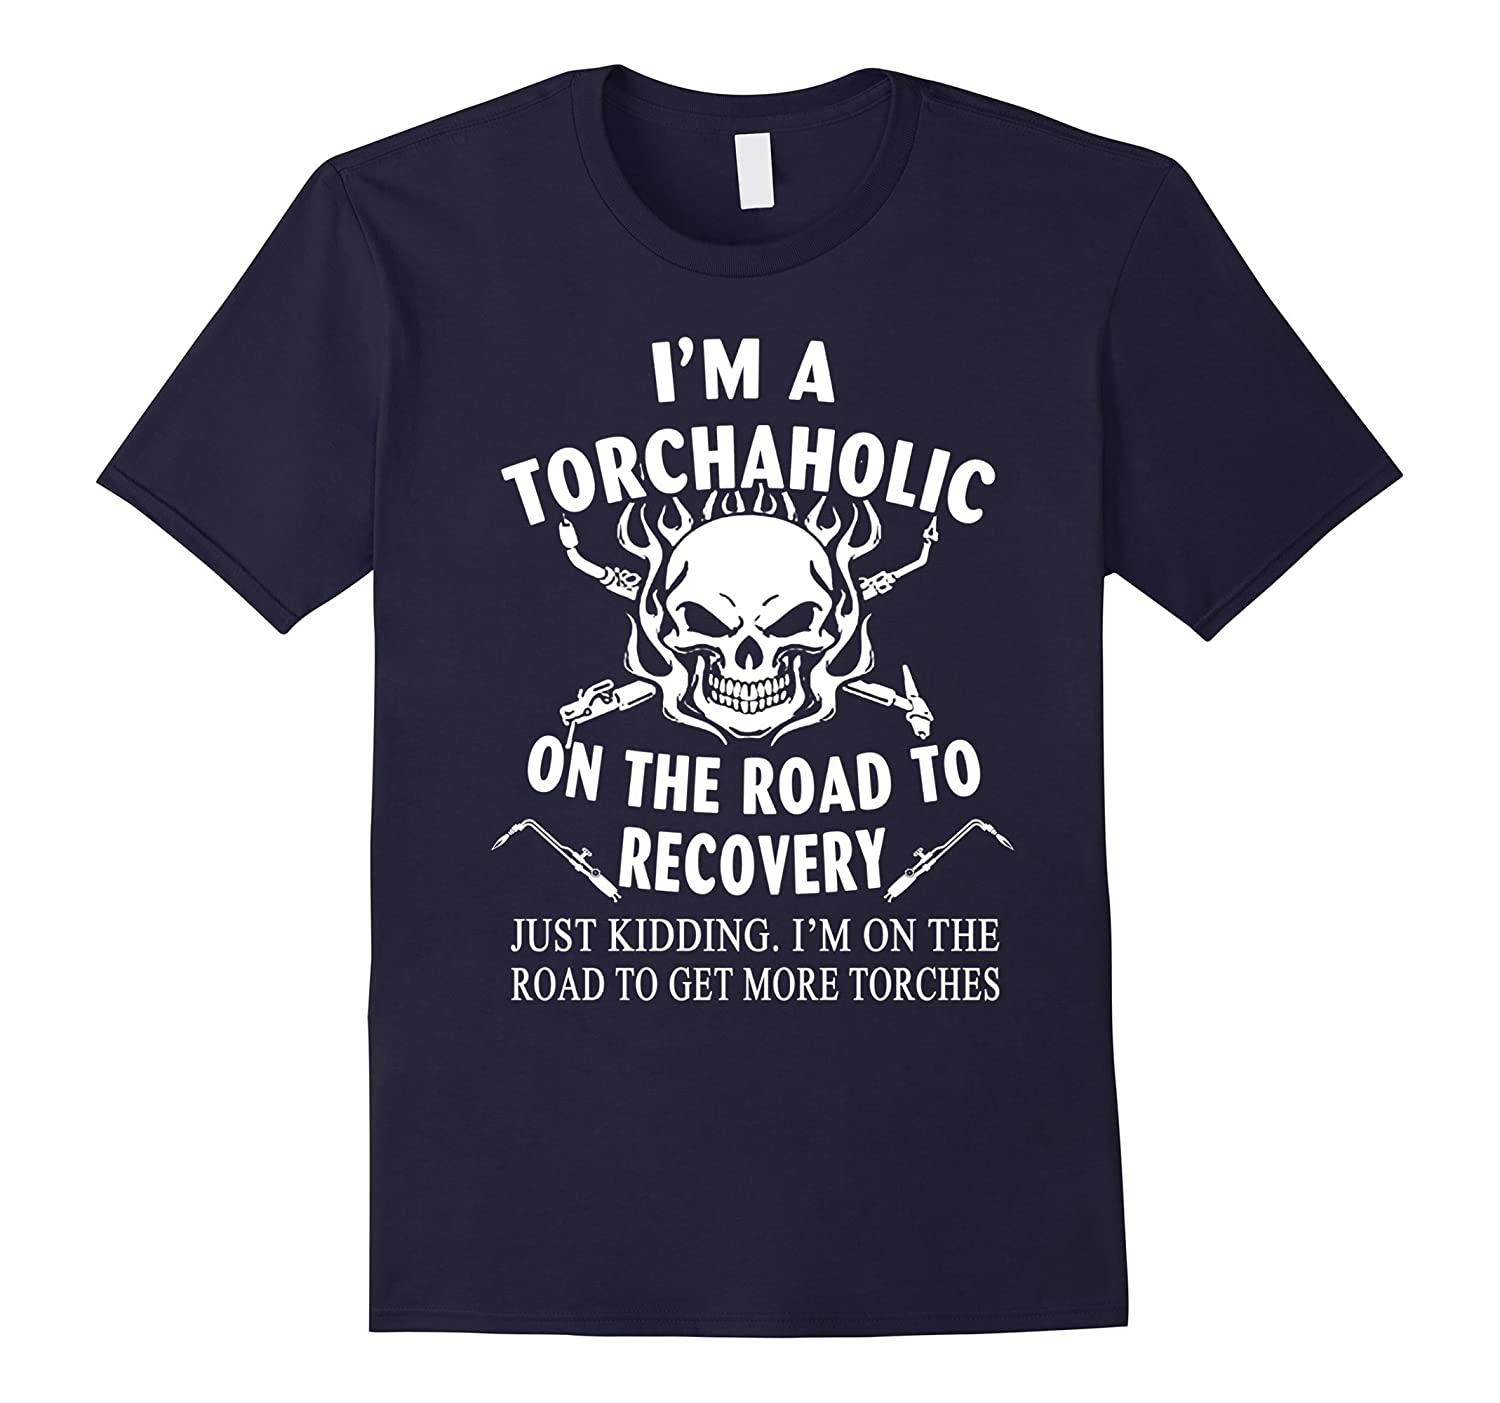 EOD shirt, I'm a torchaholic on the road to recovery